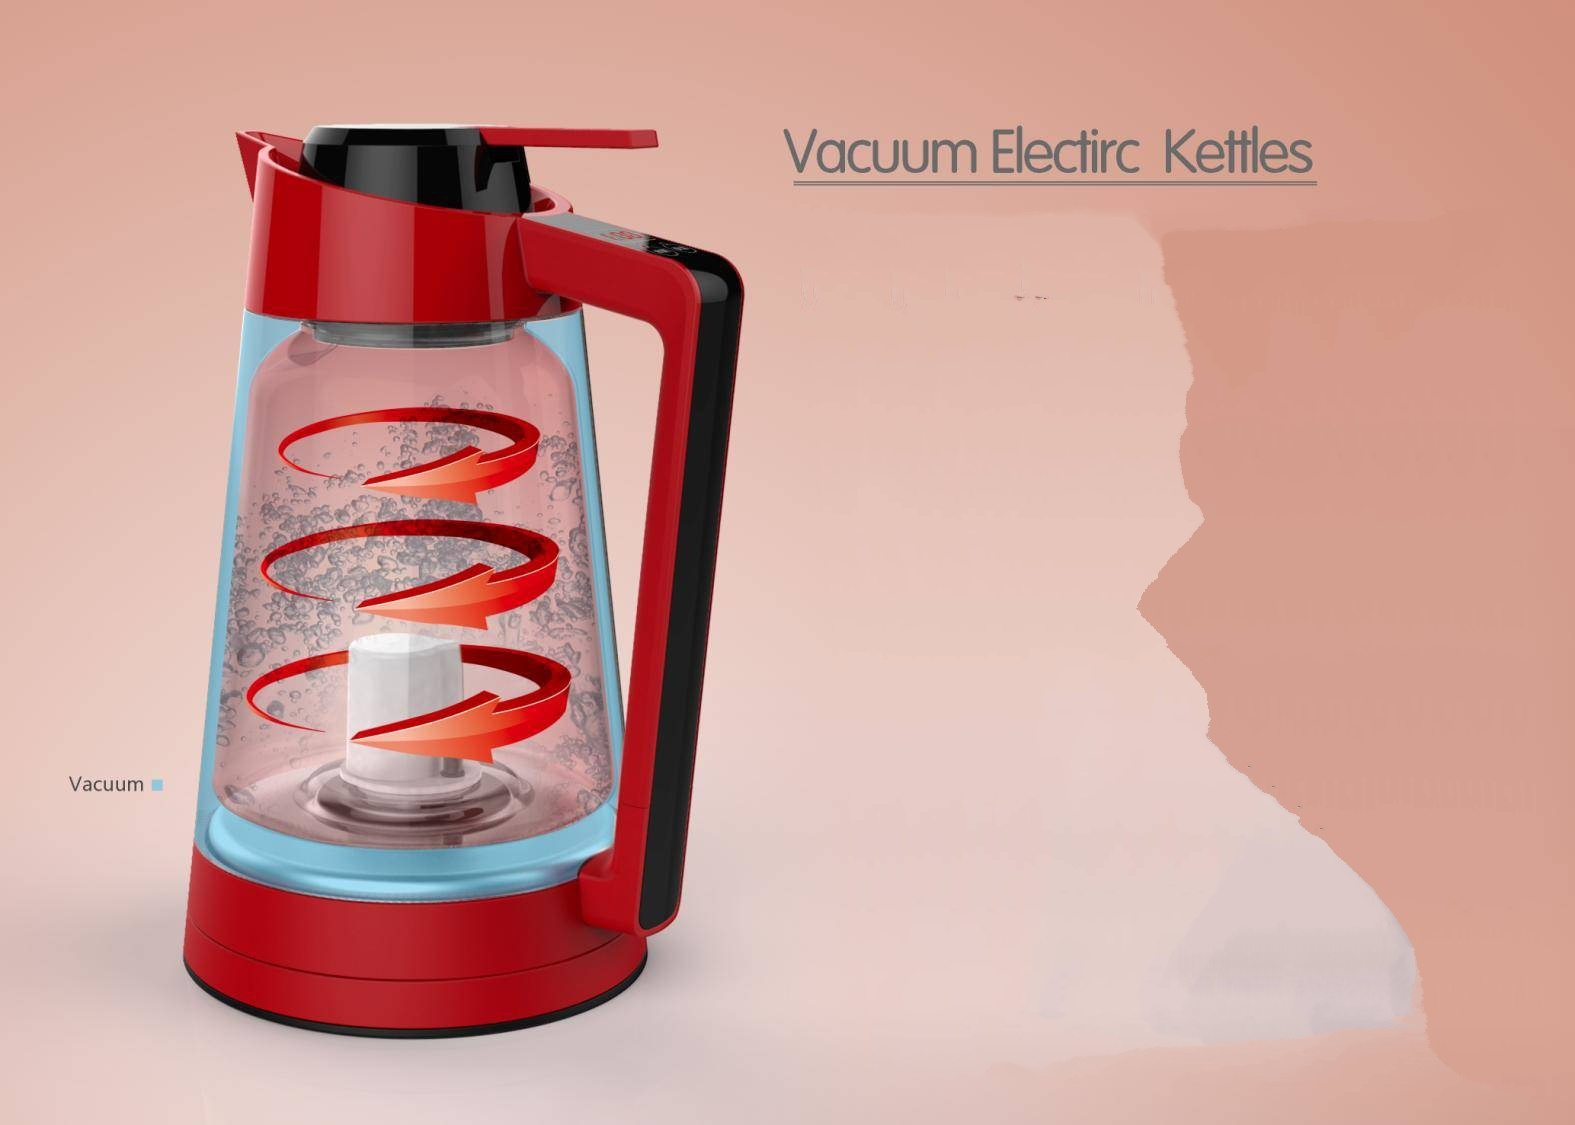 Vacuum Electric Kettle